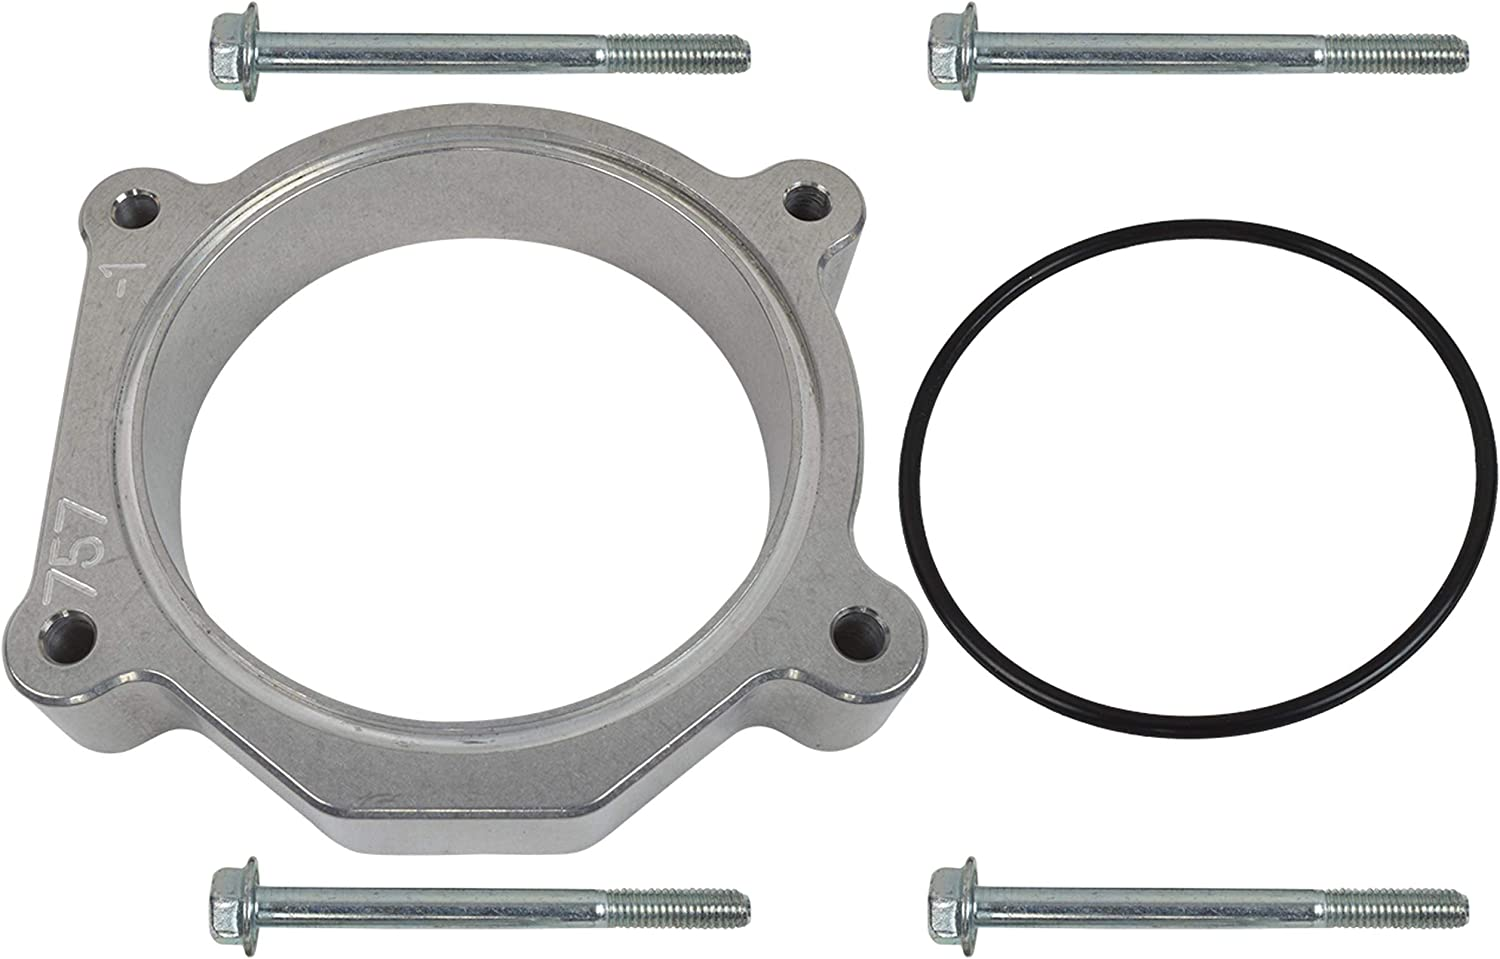 40% OFF Cheap Sale ICT Billet LSA LS3 Free Shipping New Throttle Body Spacer Cleara Adapter inch 1 LS